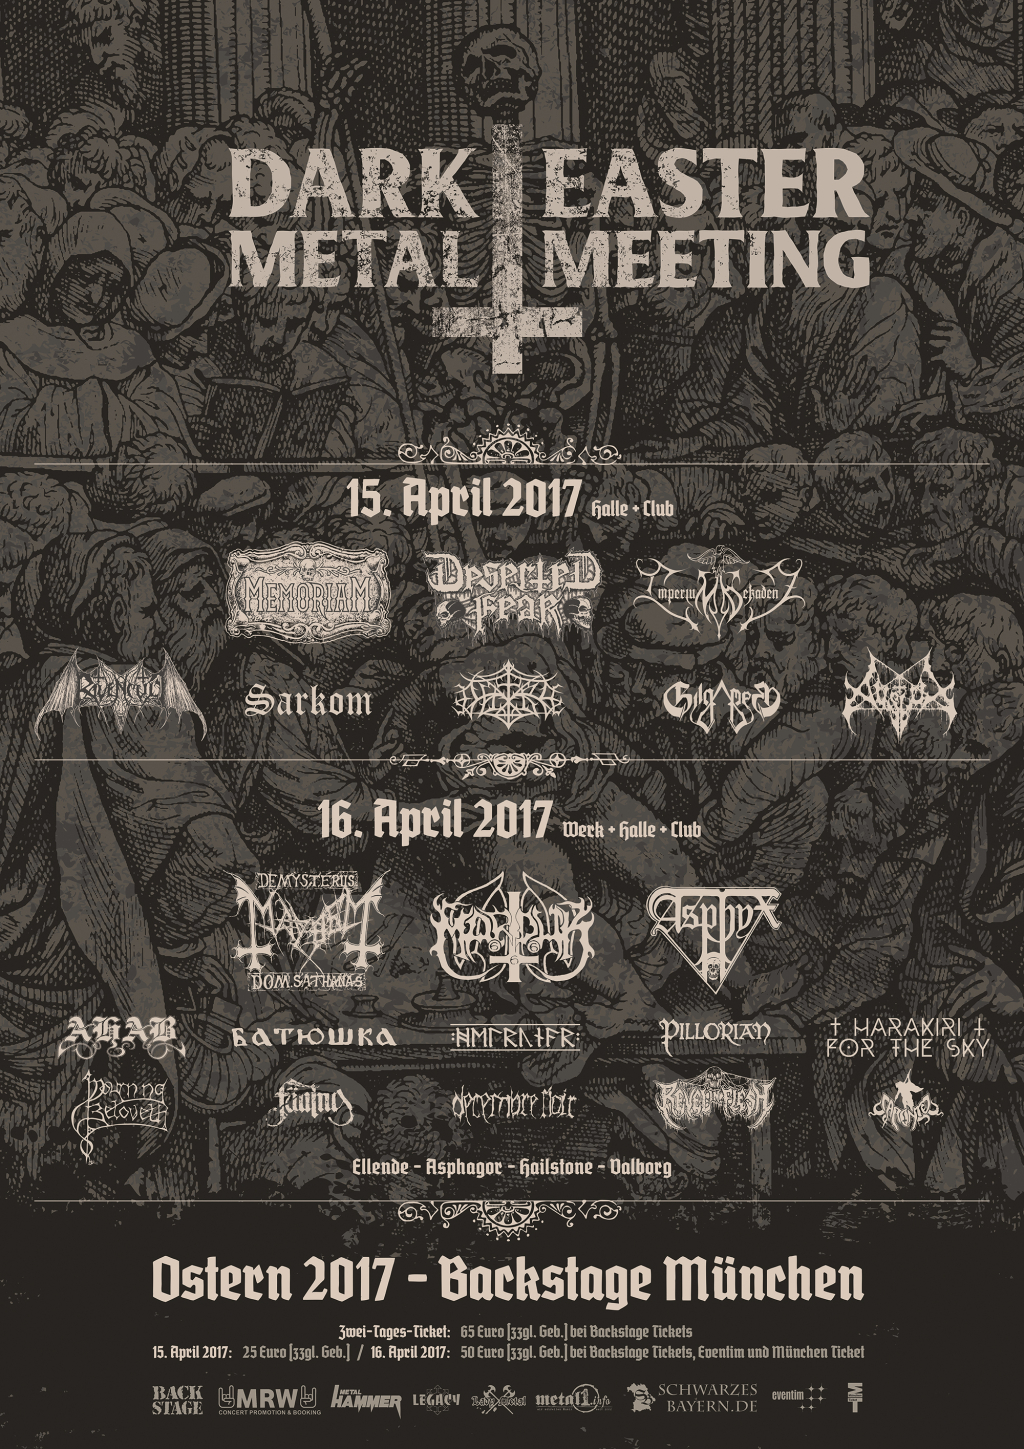 Dark Easter Metal Meeting 2017 Plakat